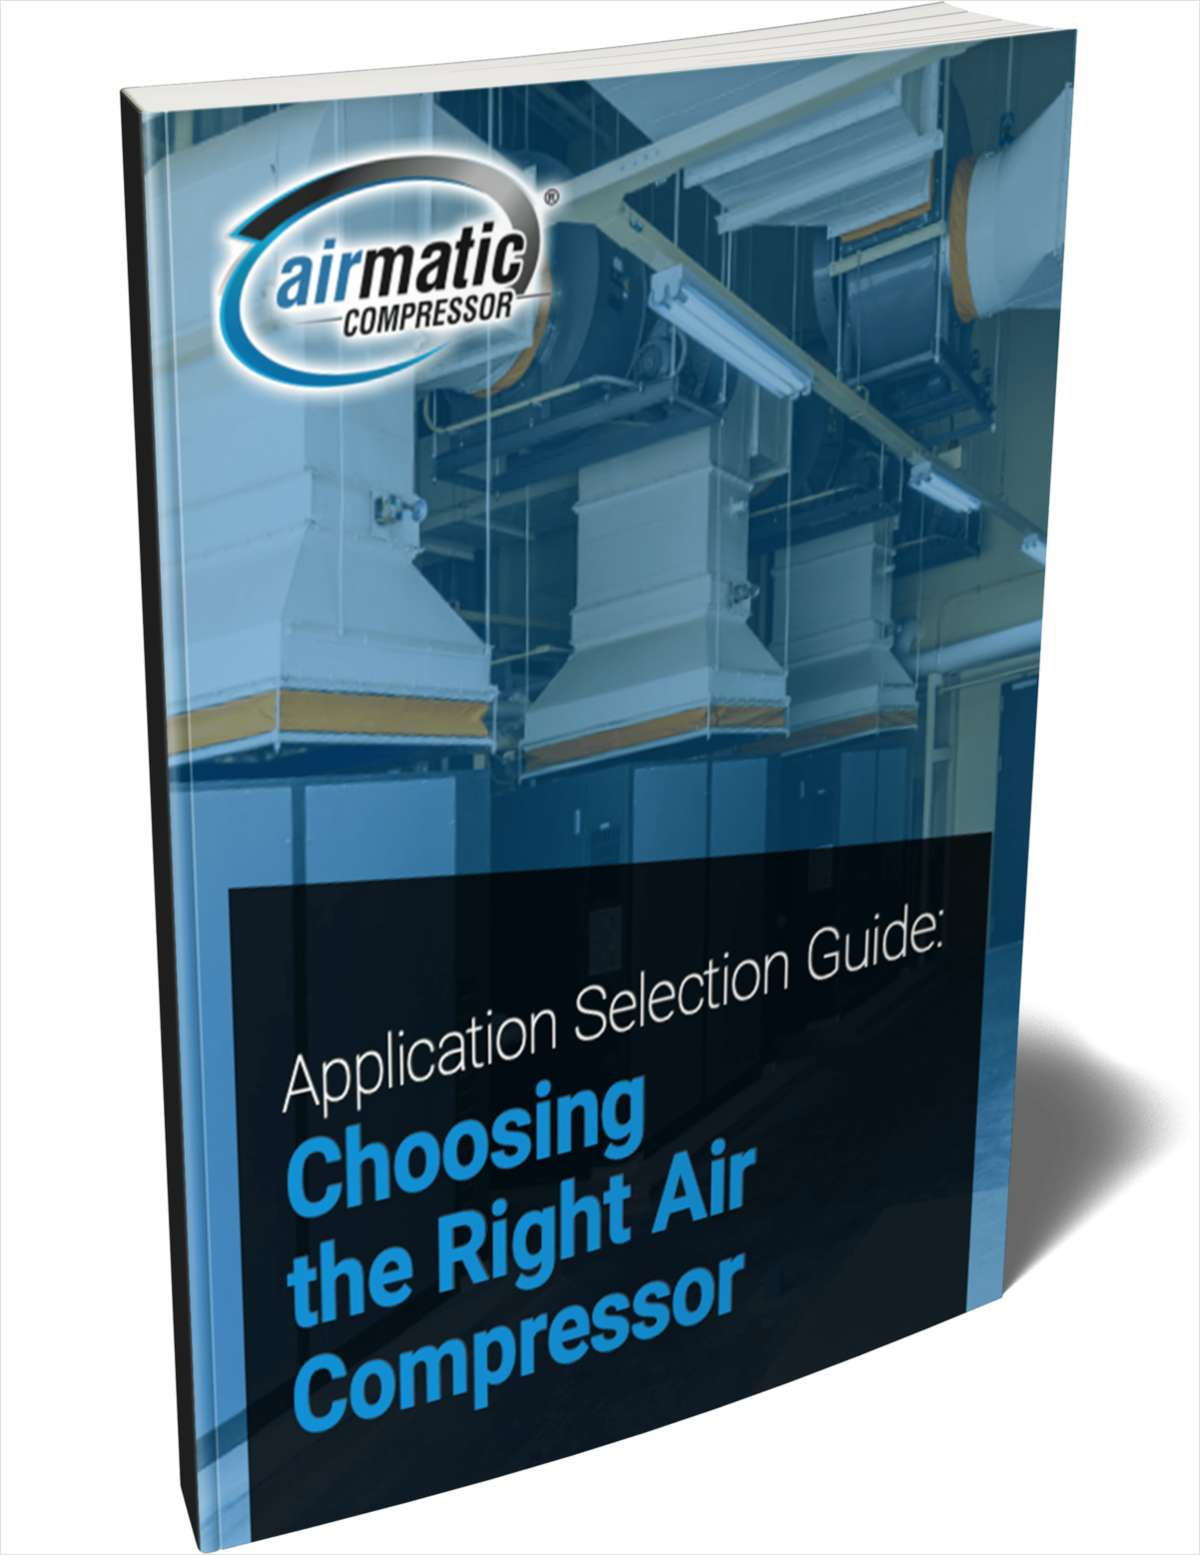 Application Selection Guide: Choosing the Right Air Compressor